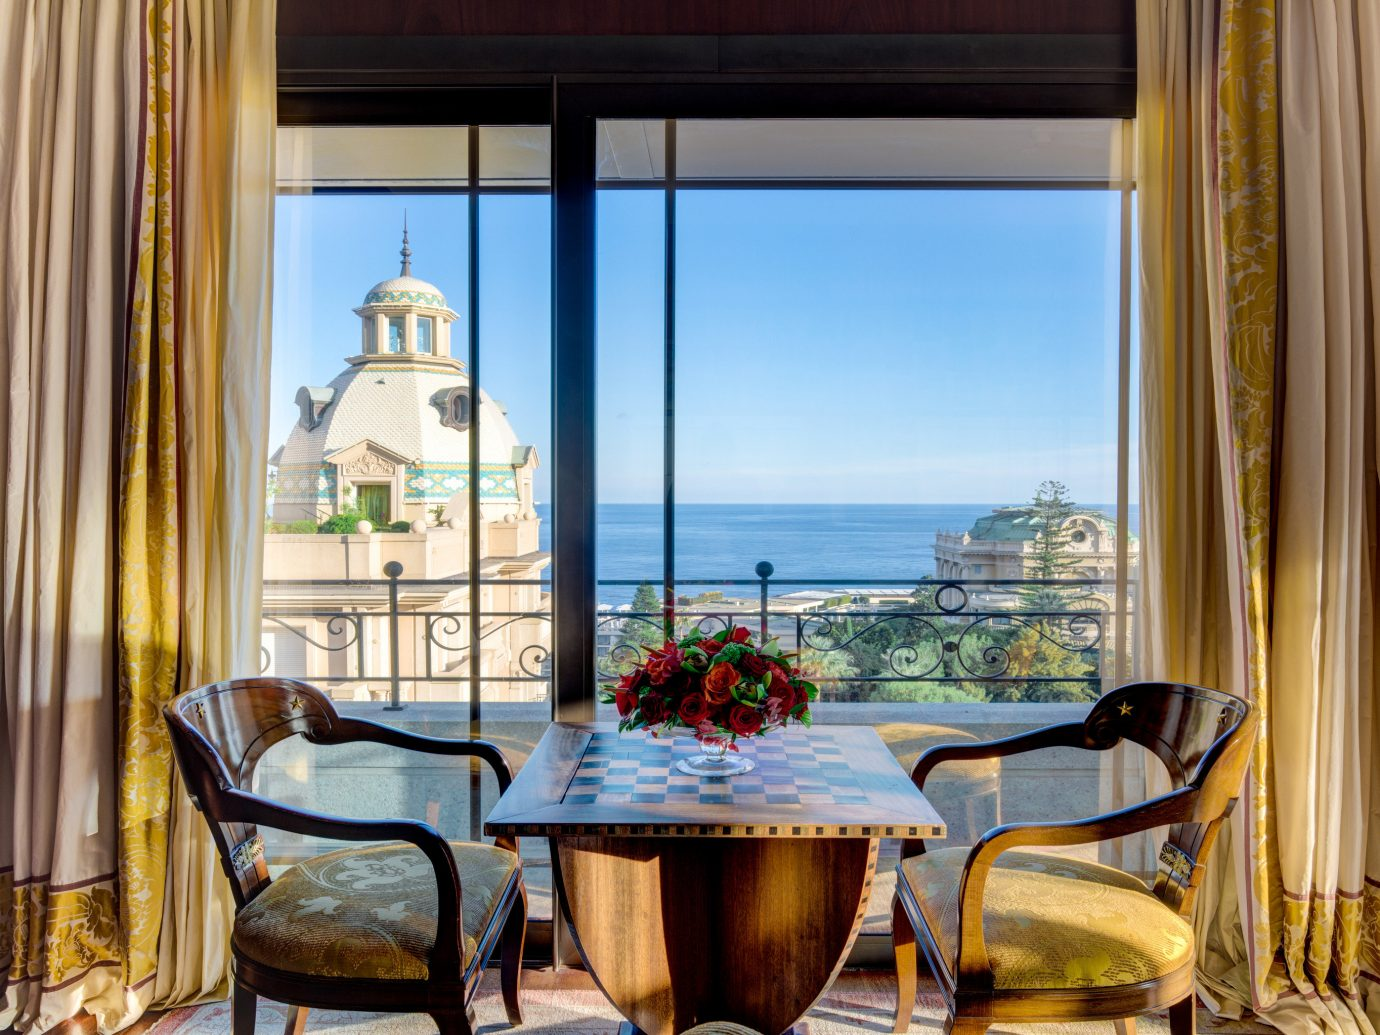 Hotels Romance room interior design dining room window Suite window treatment home hotel apartment estate living room Balcony curtain